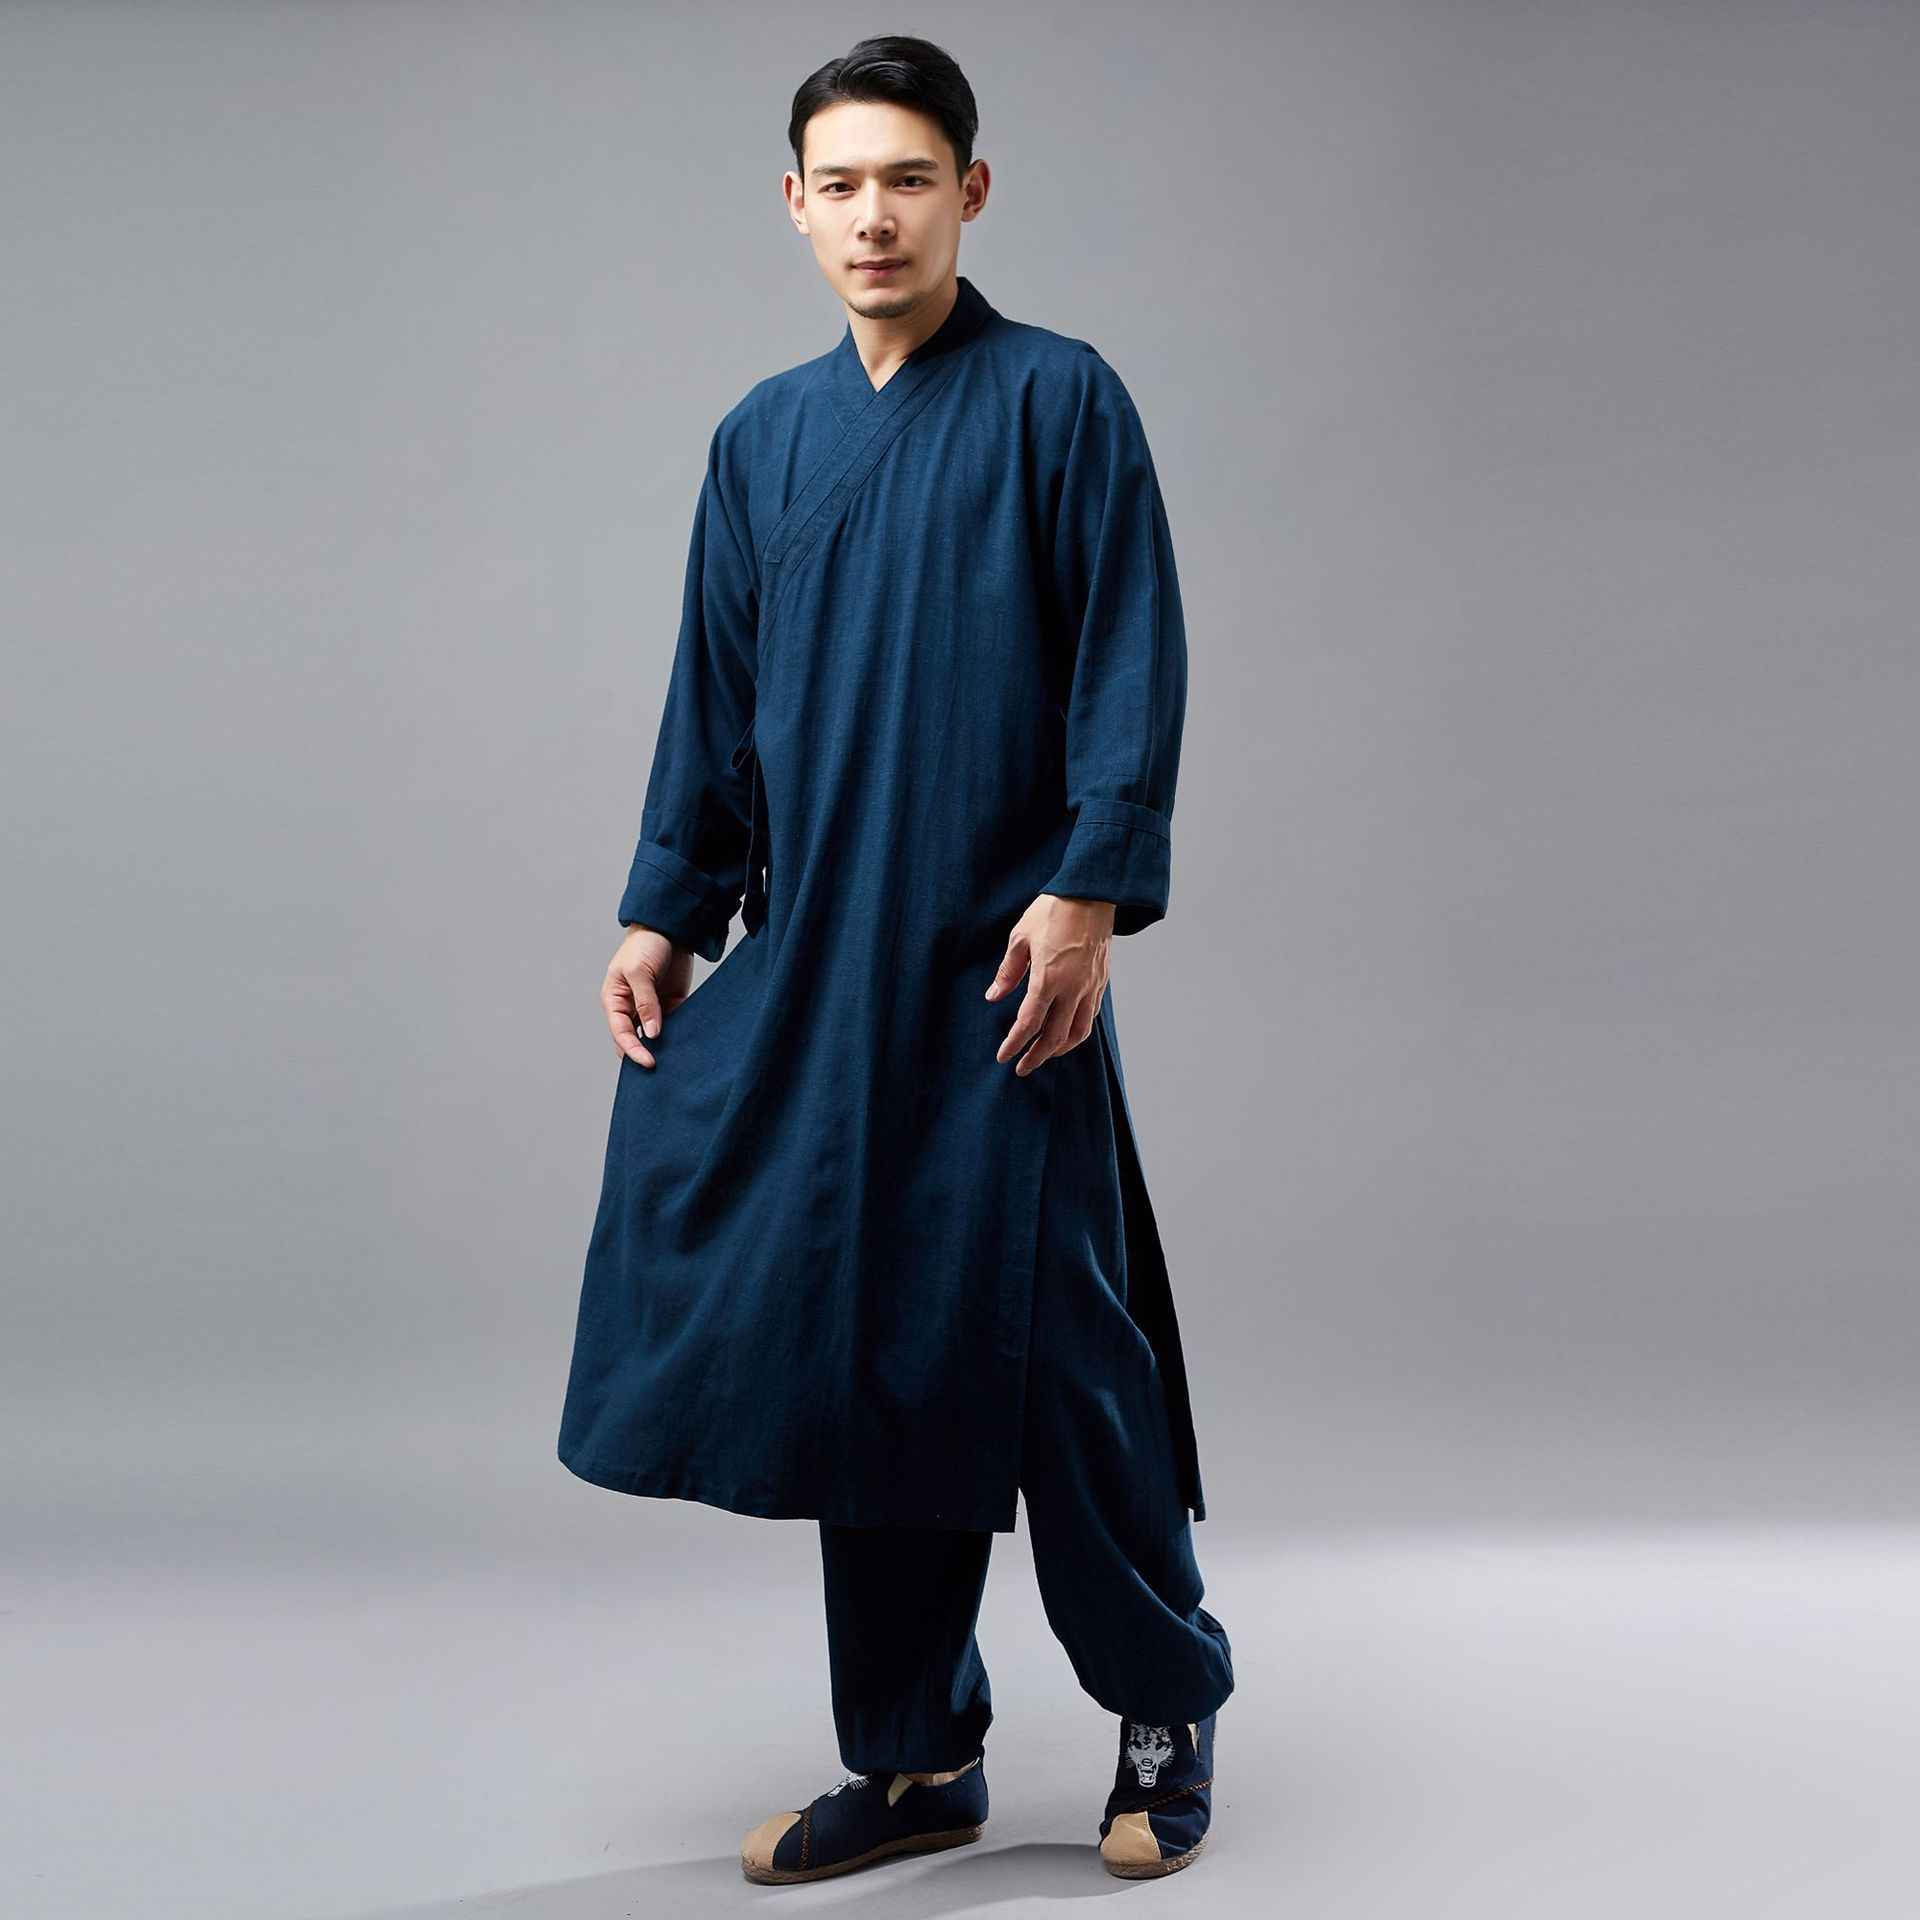 4baee048c2f ... Traditional chinese clothing for men new style Linen vintage robe  pubilc of China buddhist clothing Chinoiserie ...